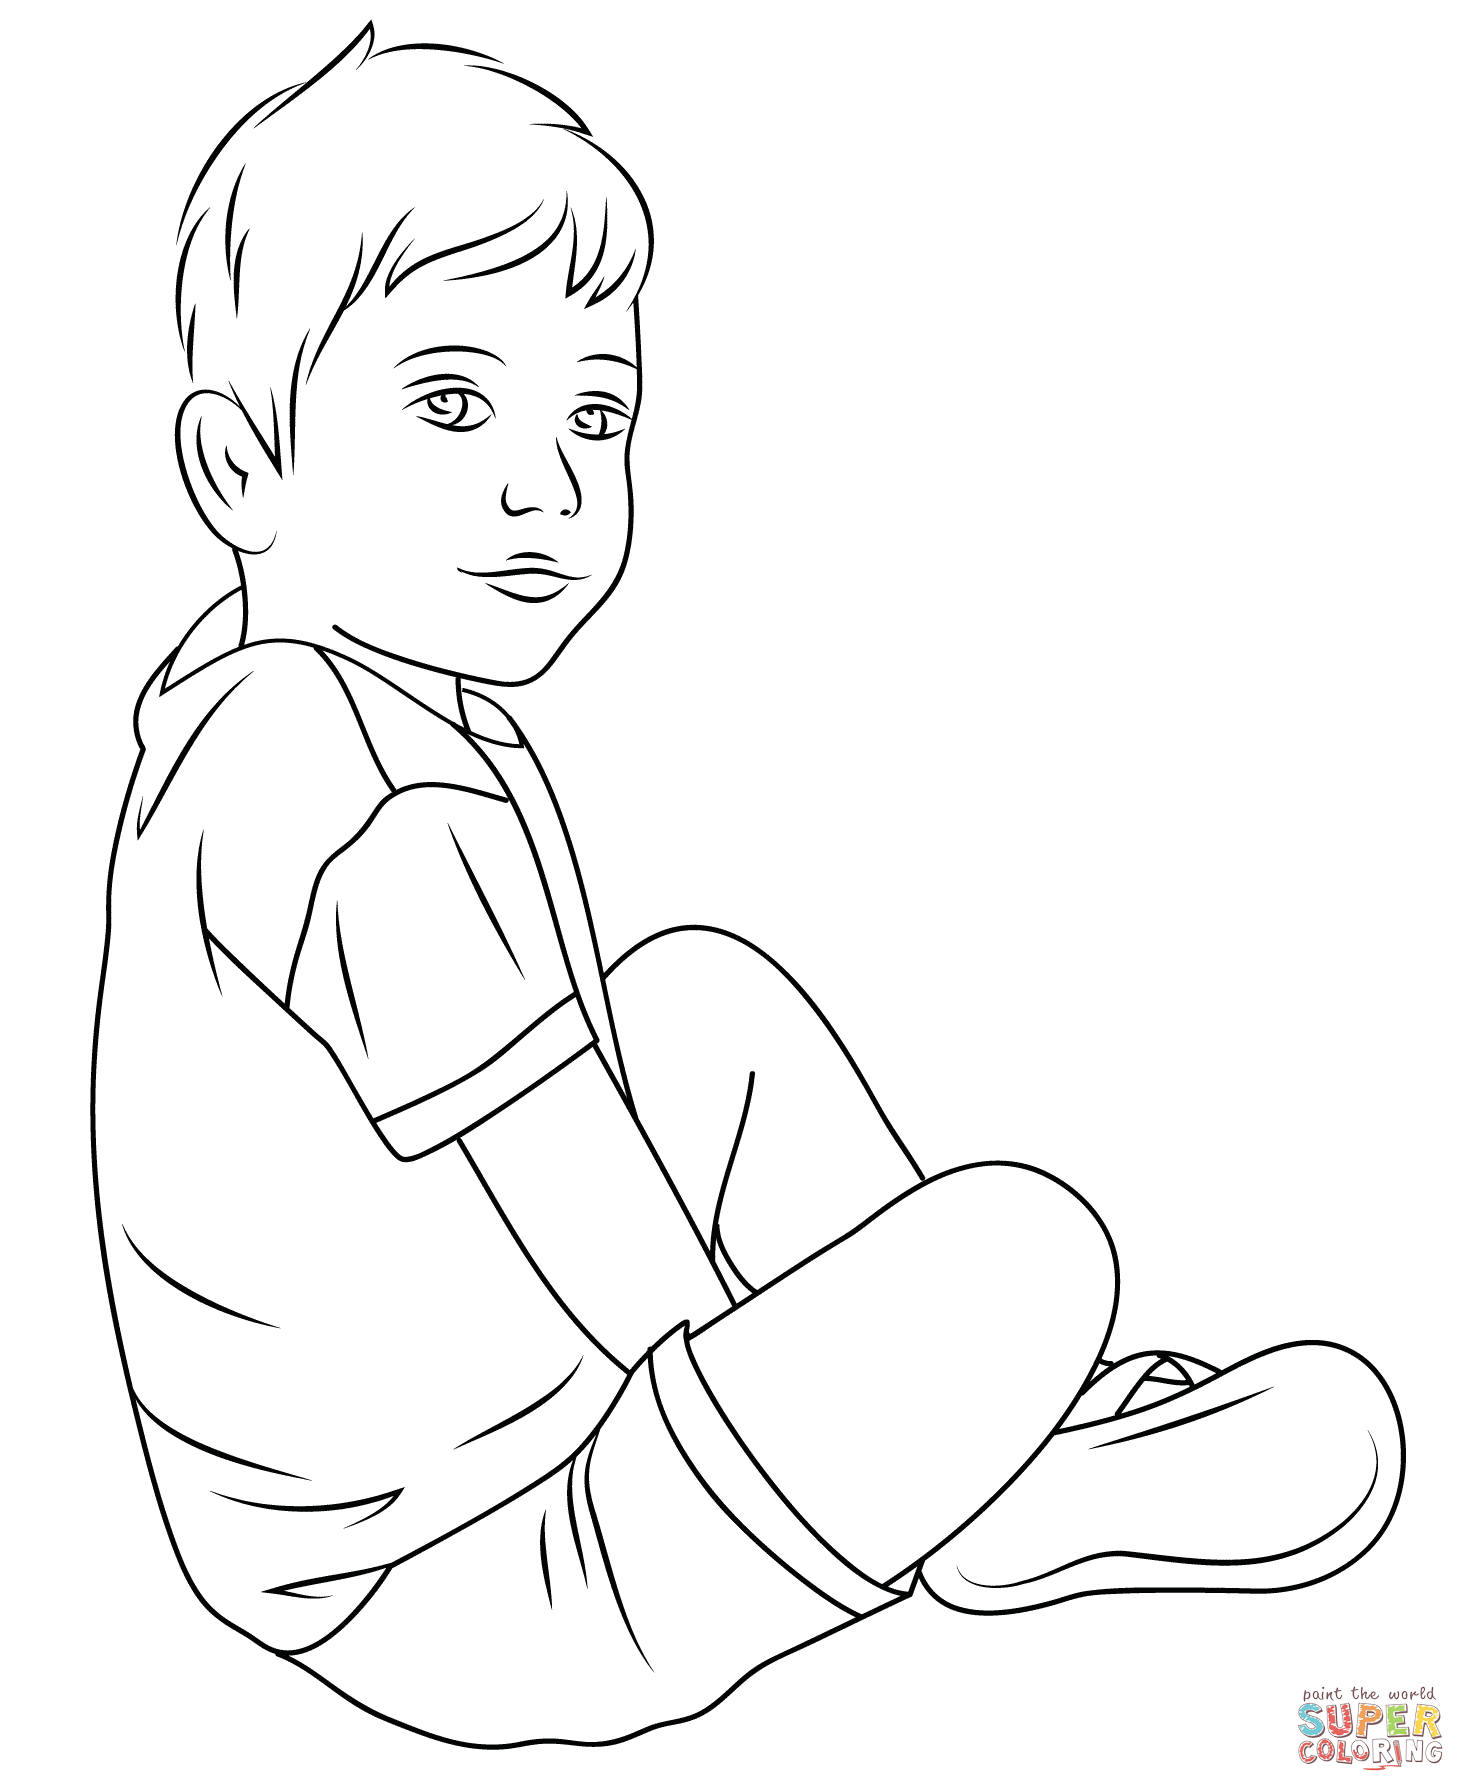 Campfire Coloring Criss Cross Style Coloring Pages